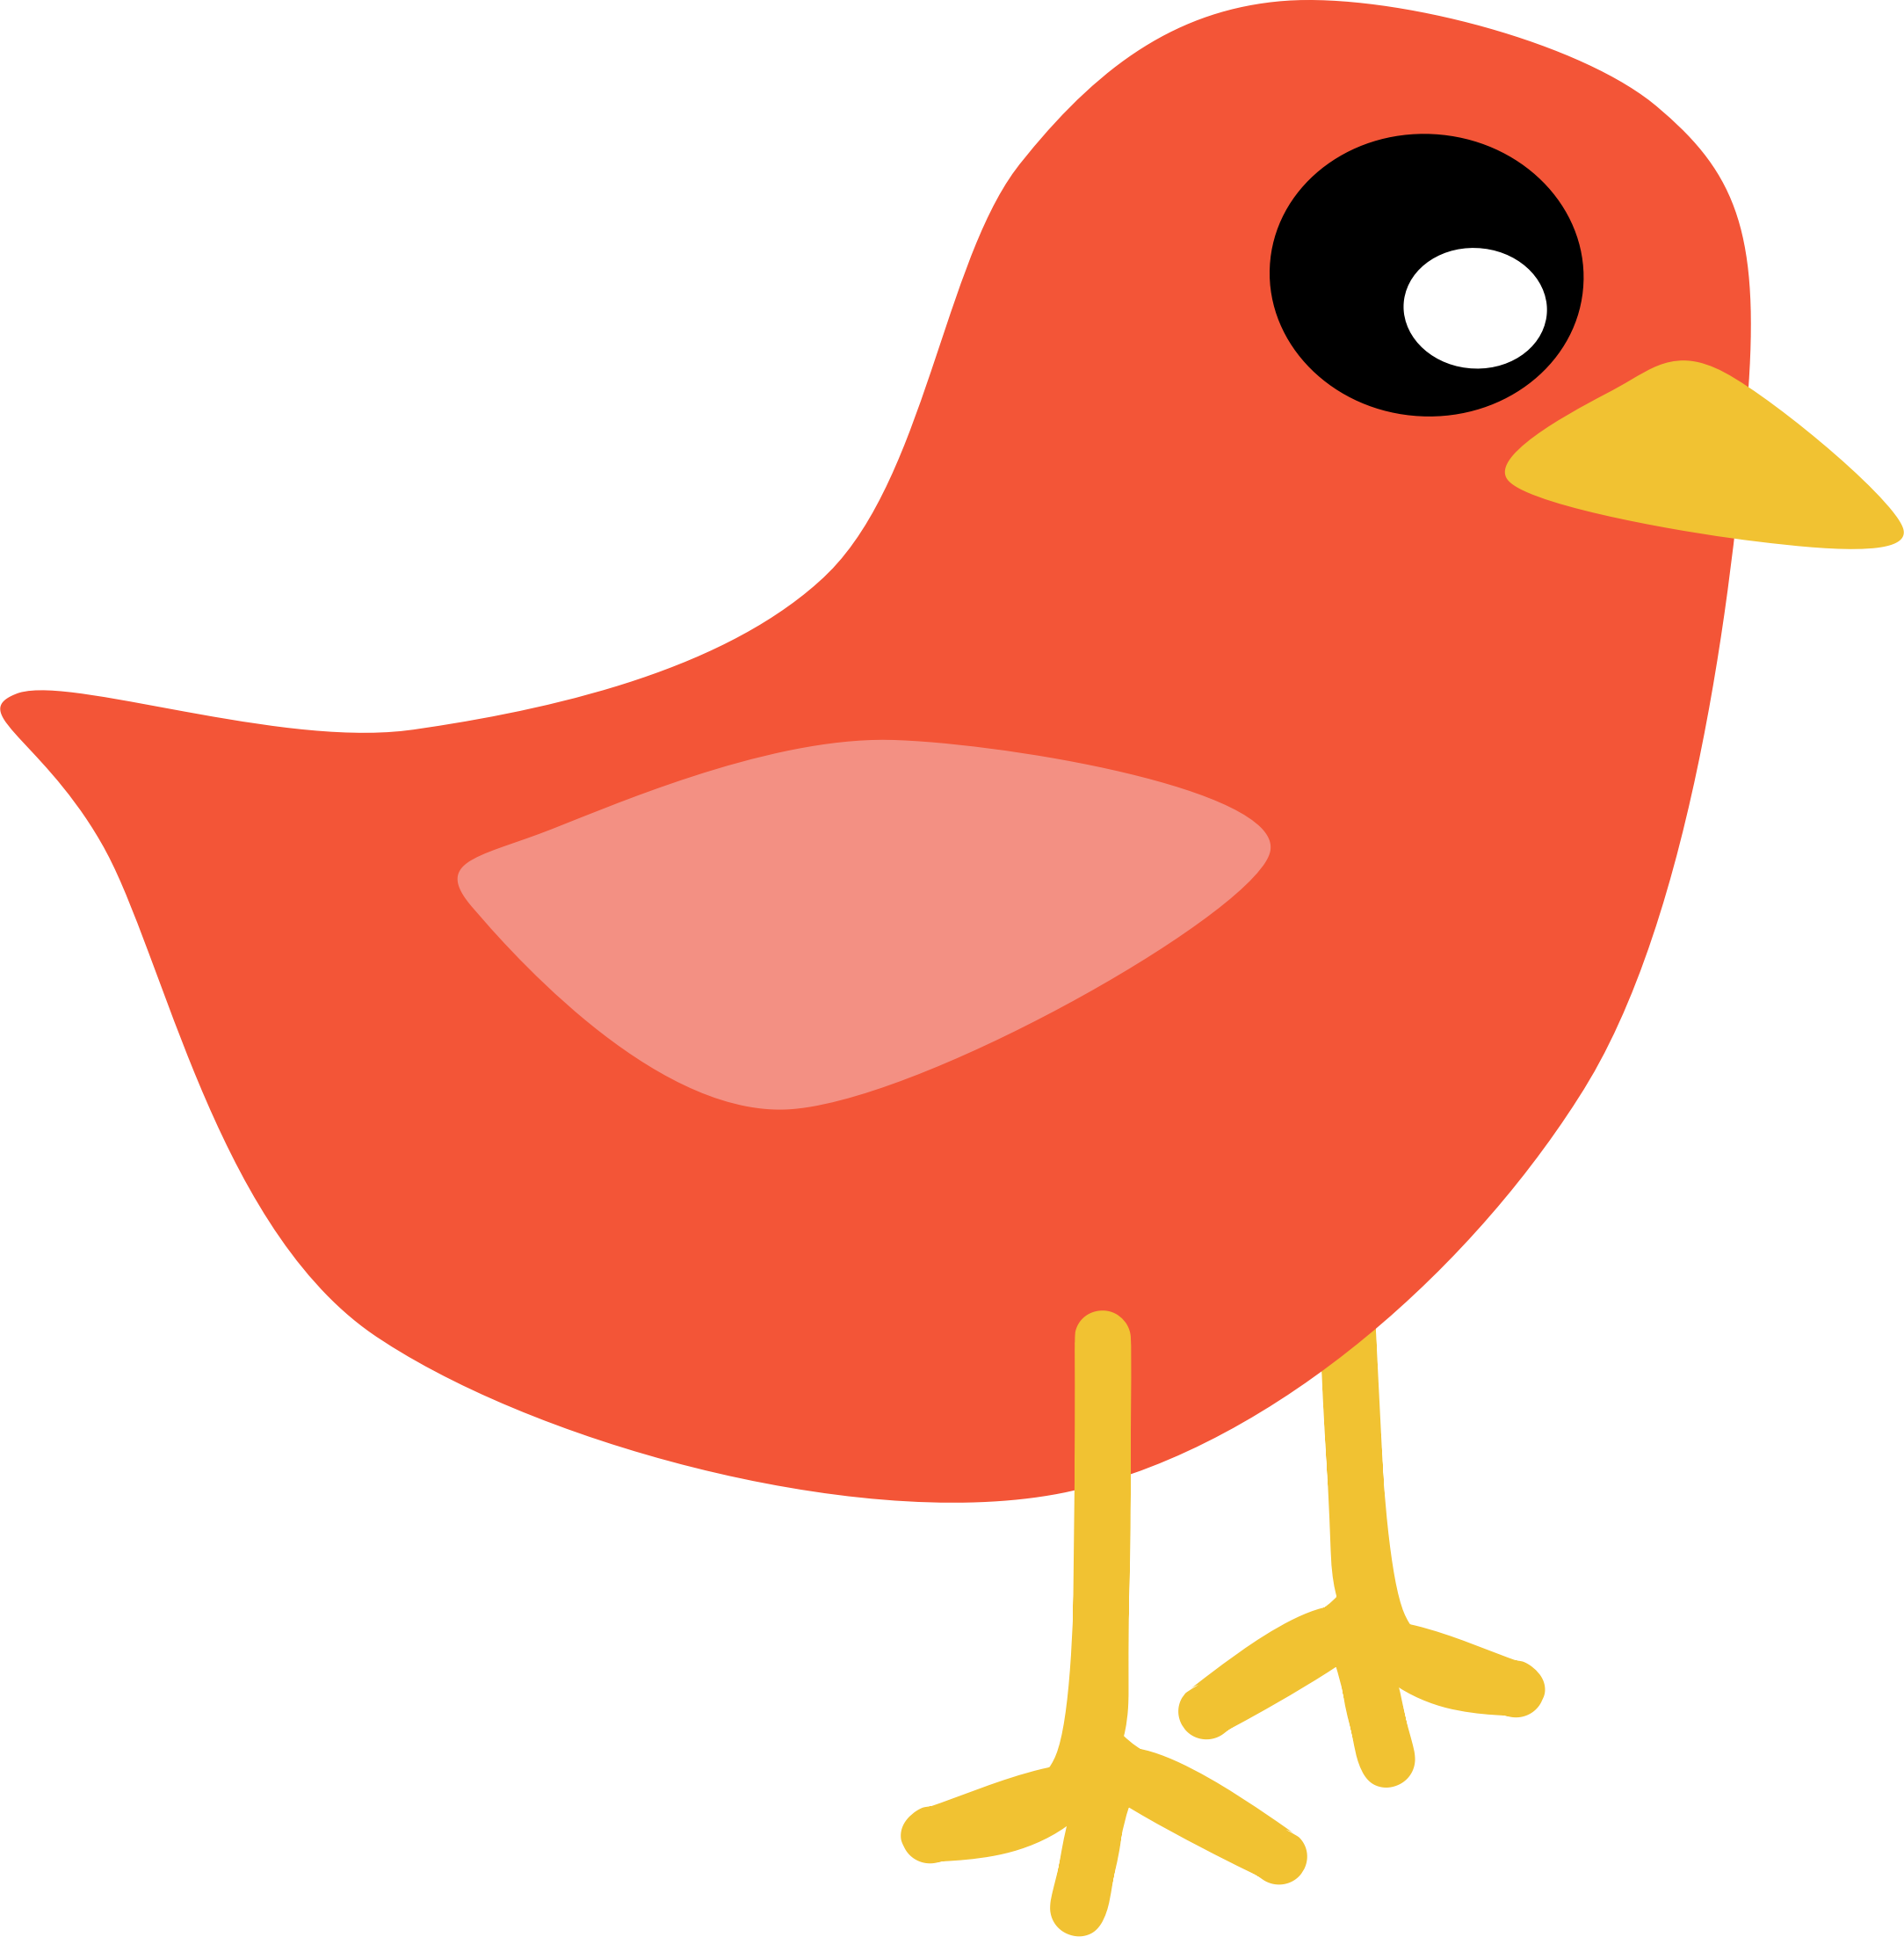 Red Bird By Scout - Red Bird Clipart